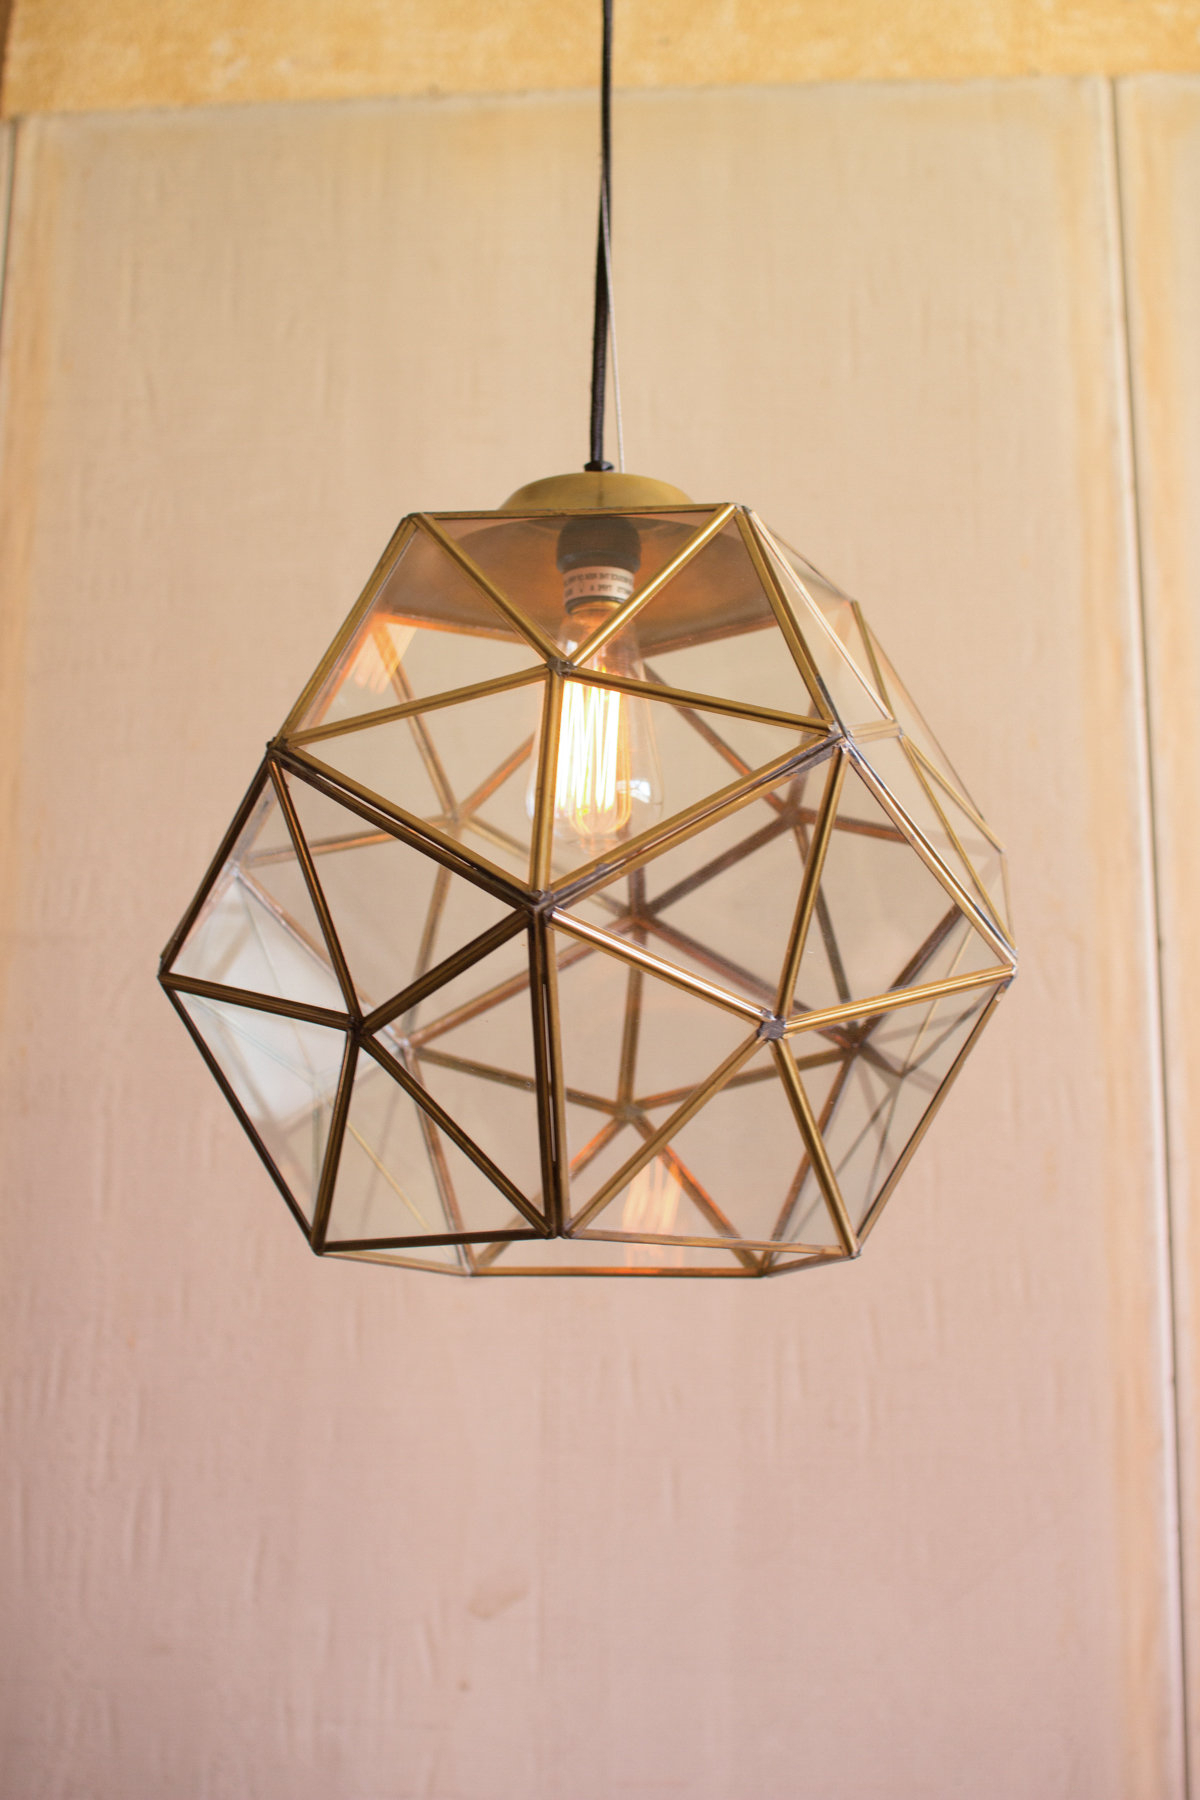 Best And Newest Edelman Glass 1 Light Lantern Pendant Inside Delon 1 Light Lantern Geometric Pendants (Gallery 13 of 20)